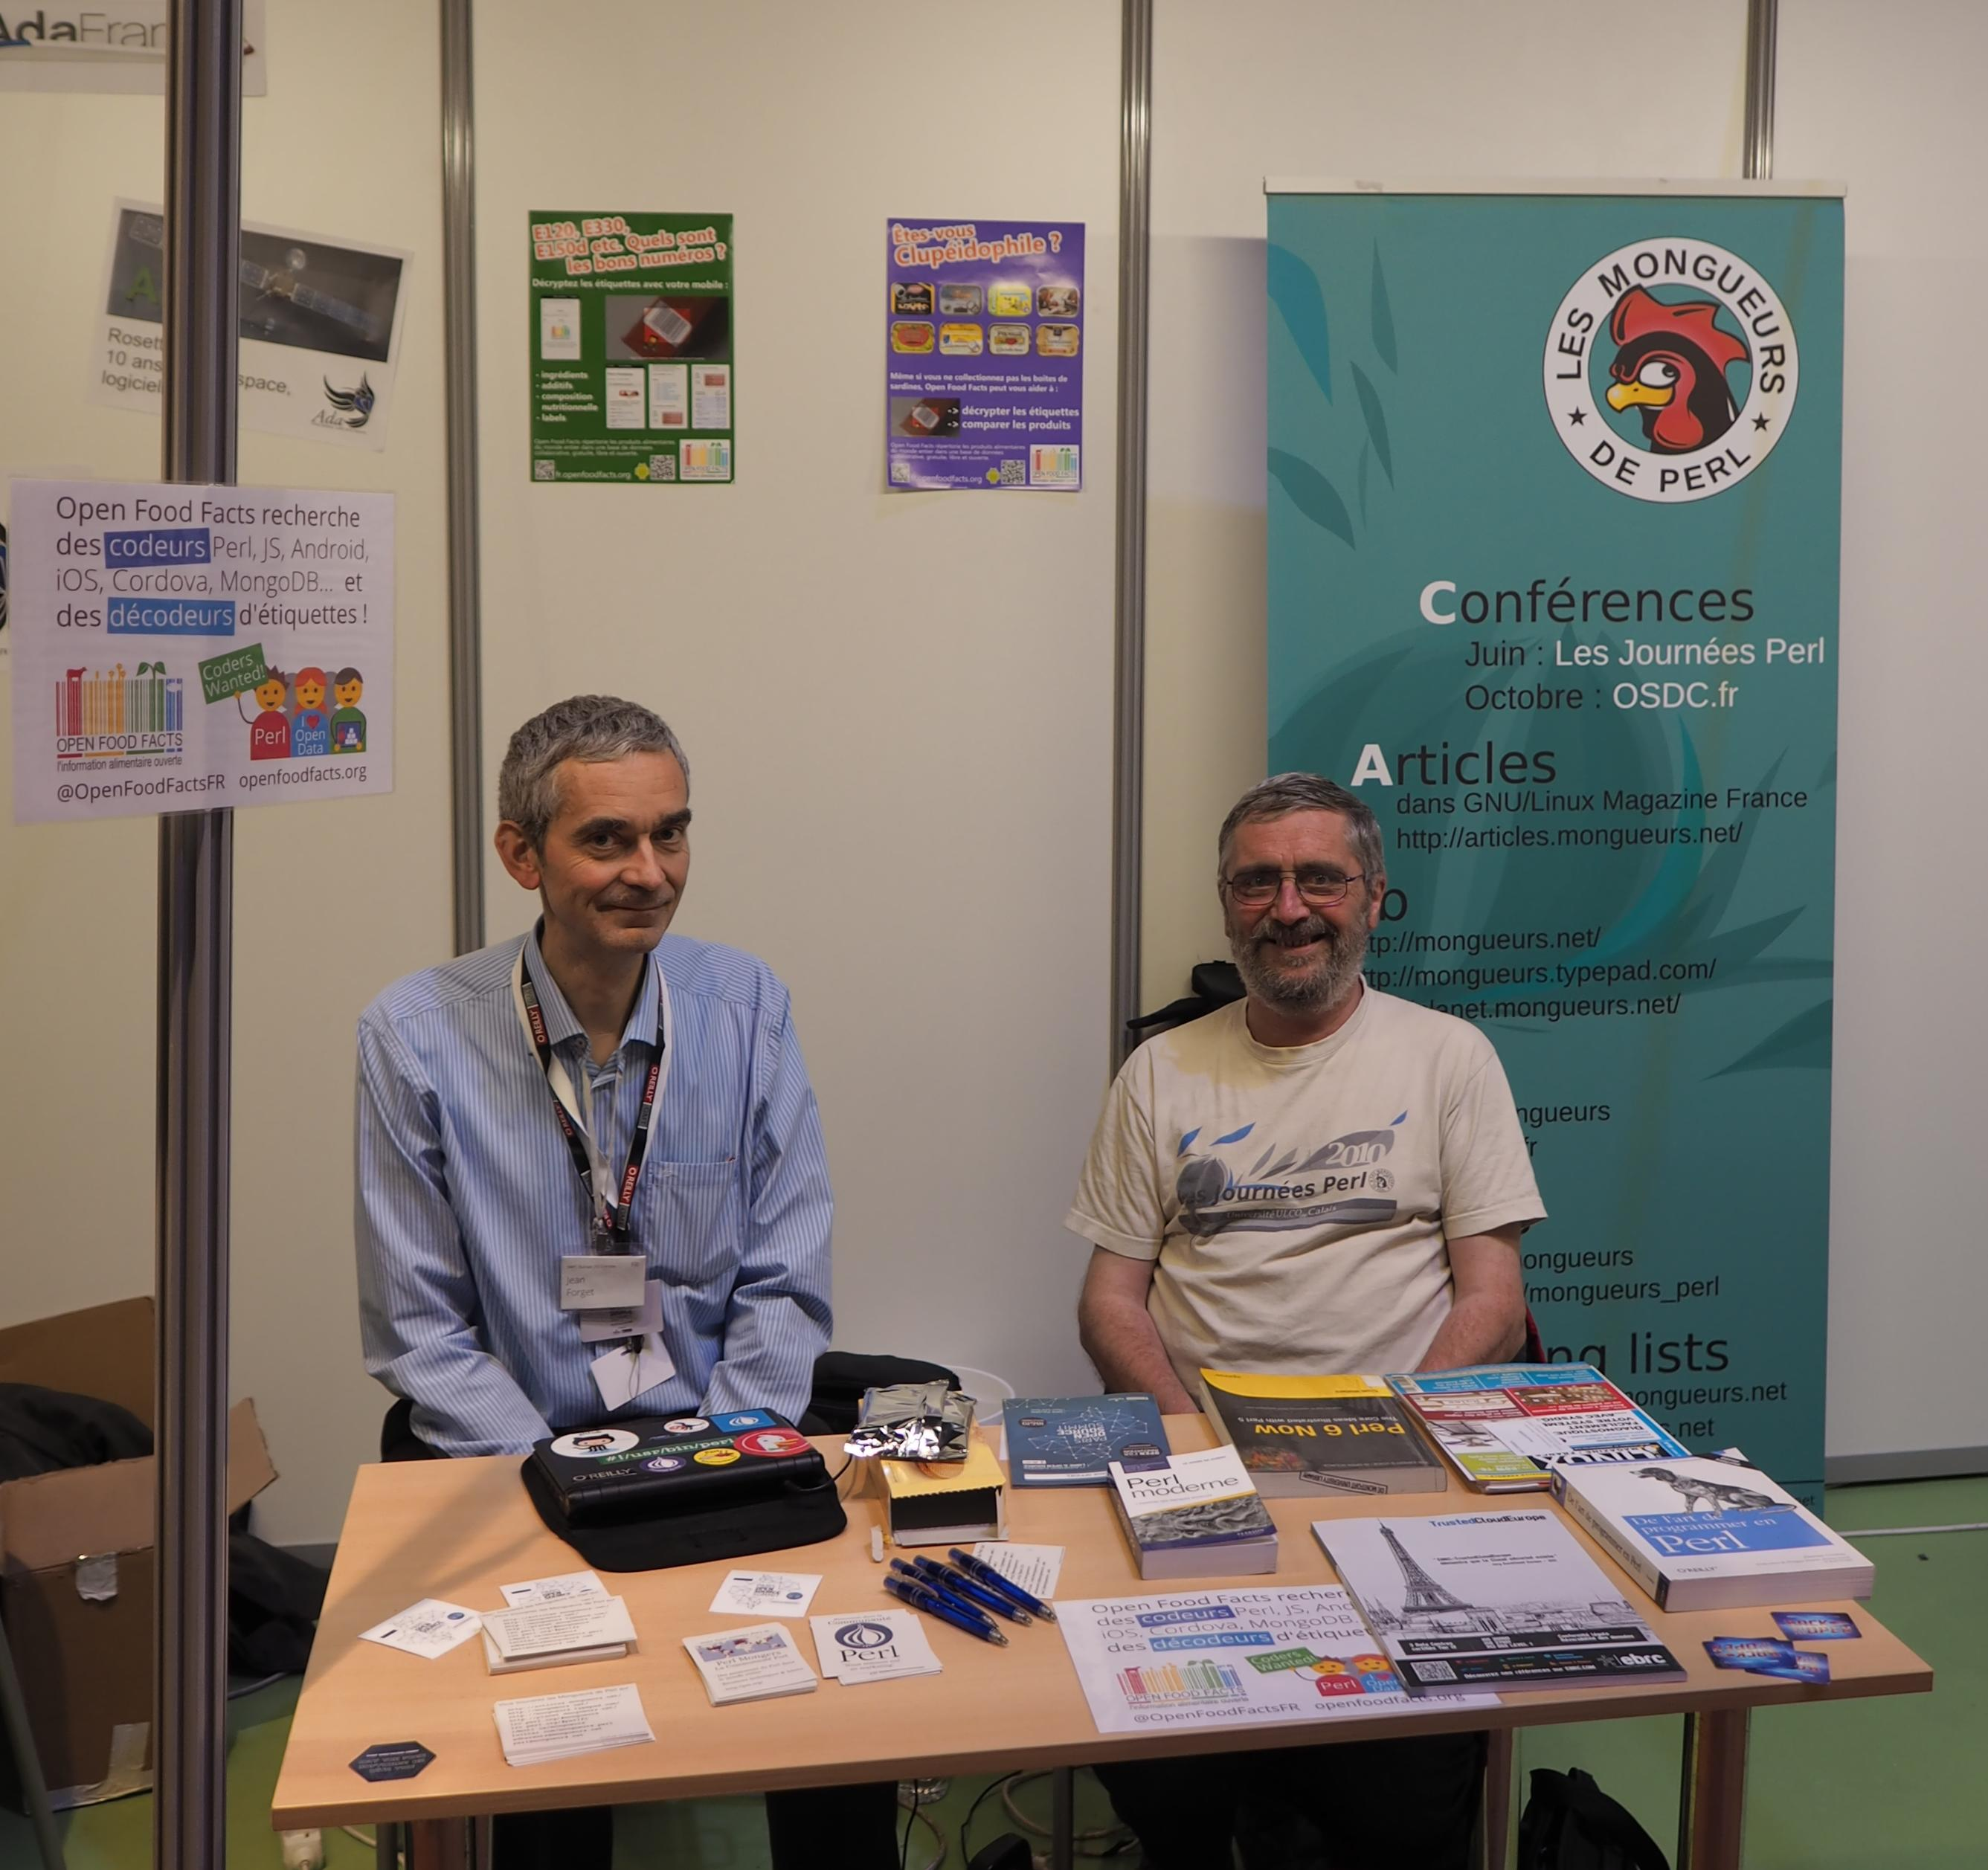 Stand des mongueurs de Perl au village associatif du Paris Open Summit